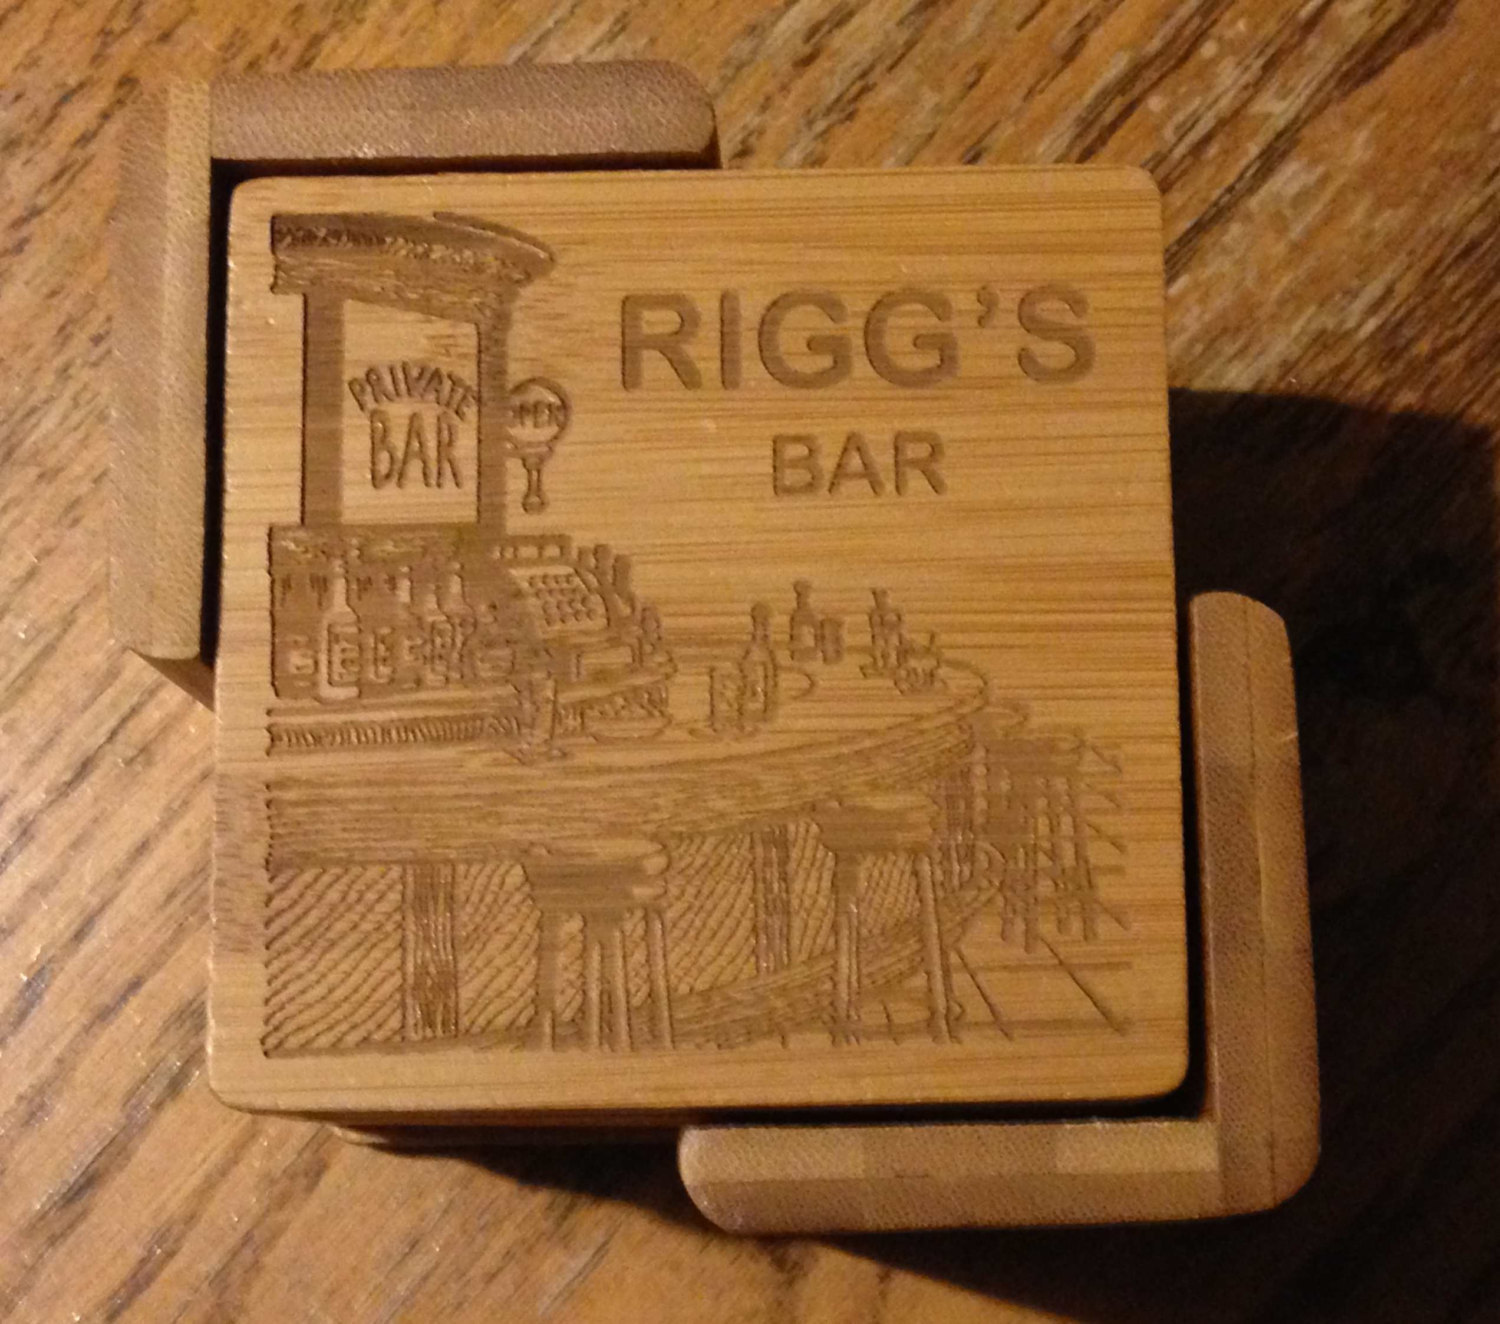 Gifts For Man Cave Bar : Personalized bar coaster set great gift